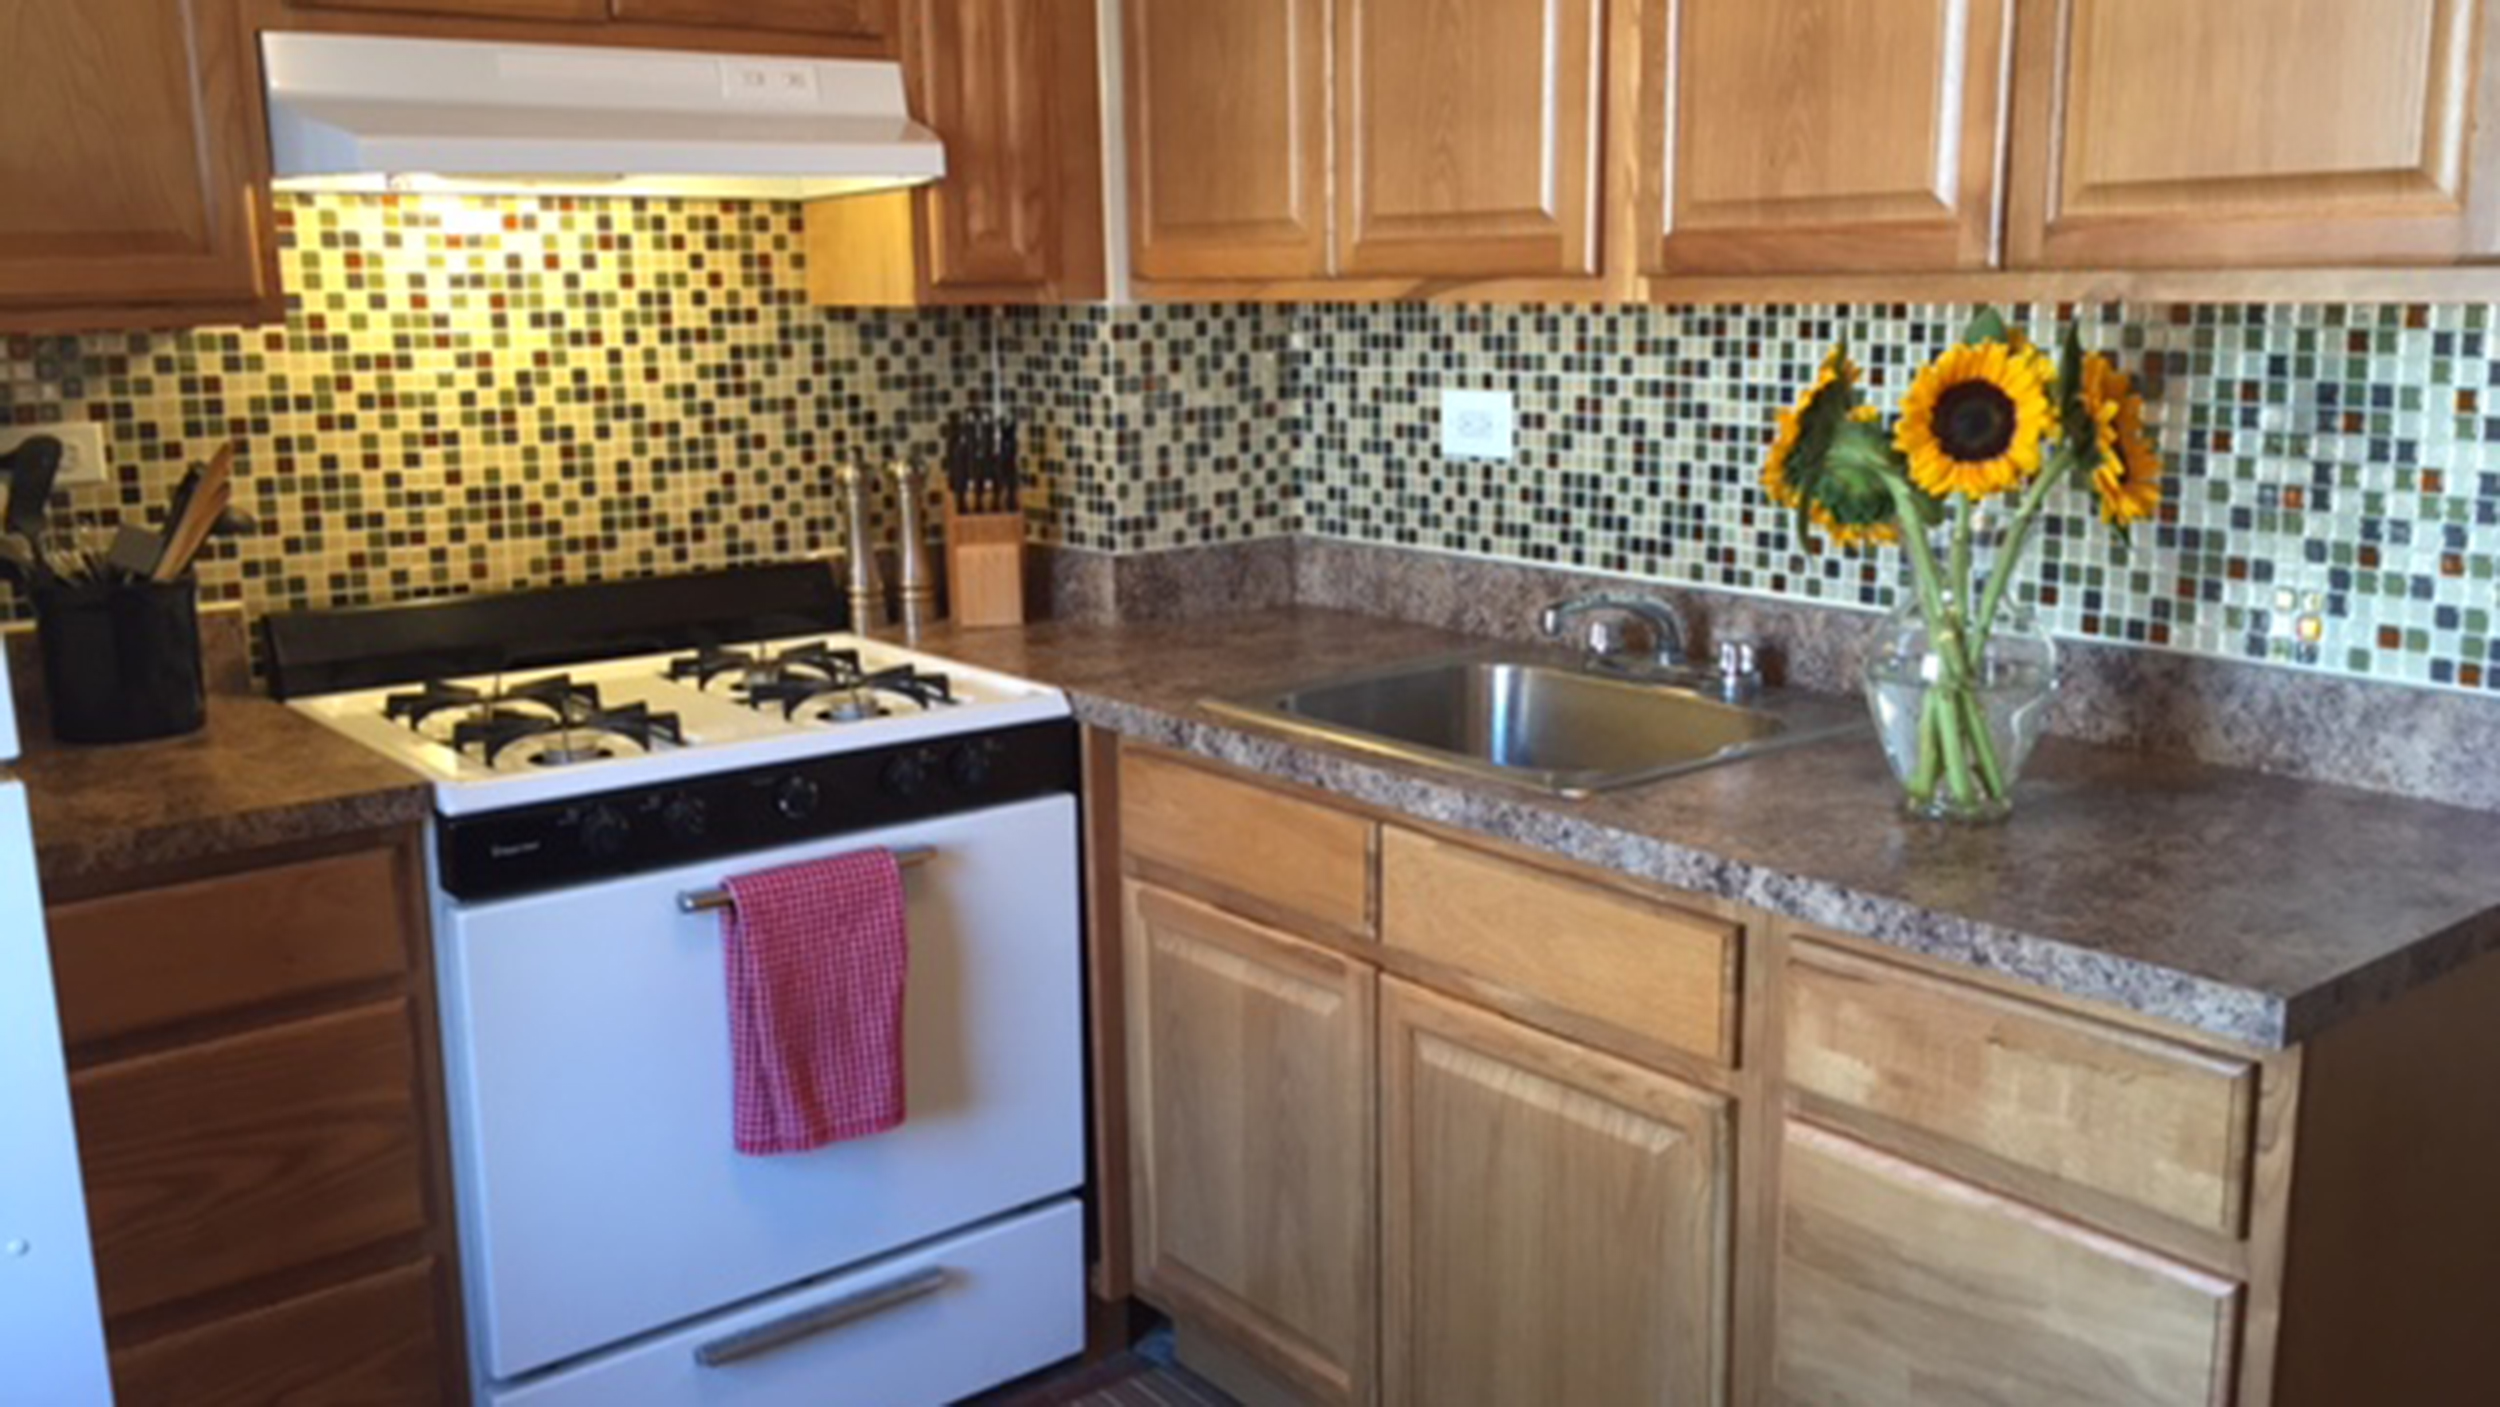 Temporary Backsplash Ideas Part - 15: TODAY Tests Temporary Backsplash Tiles From Smart Tiles